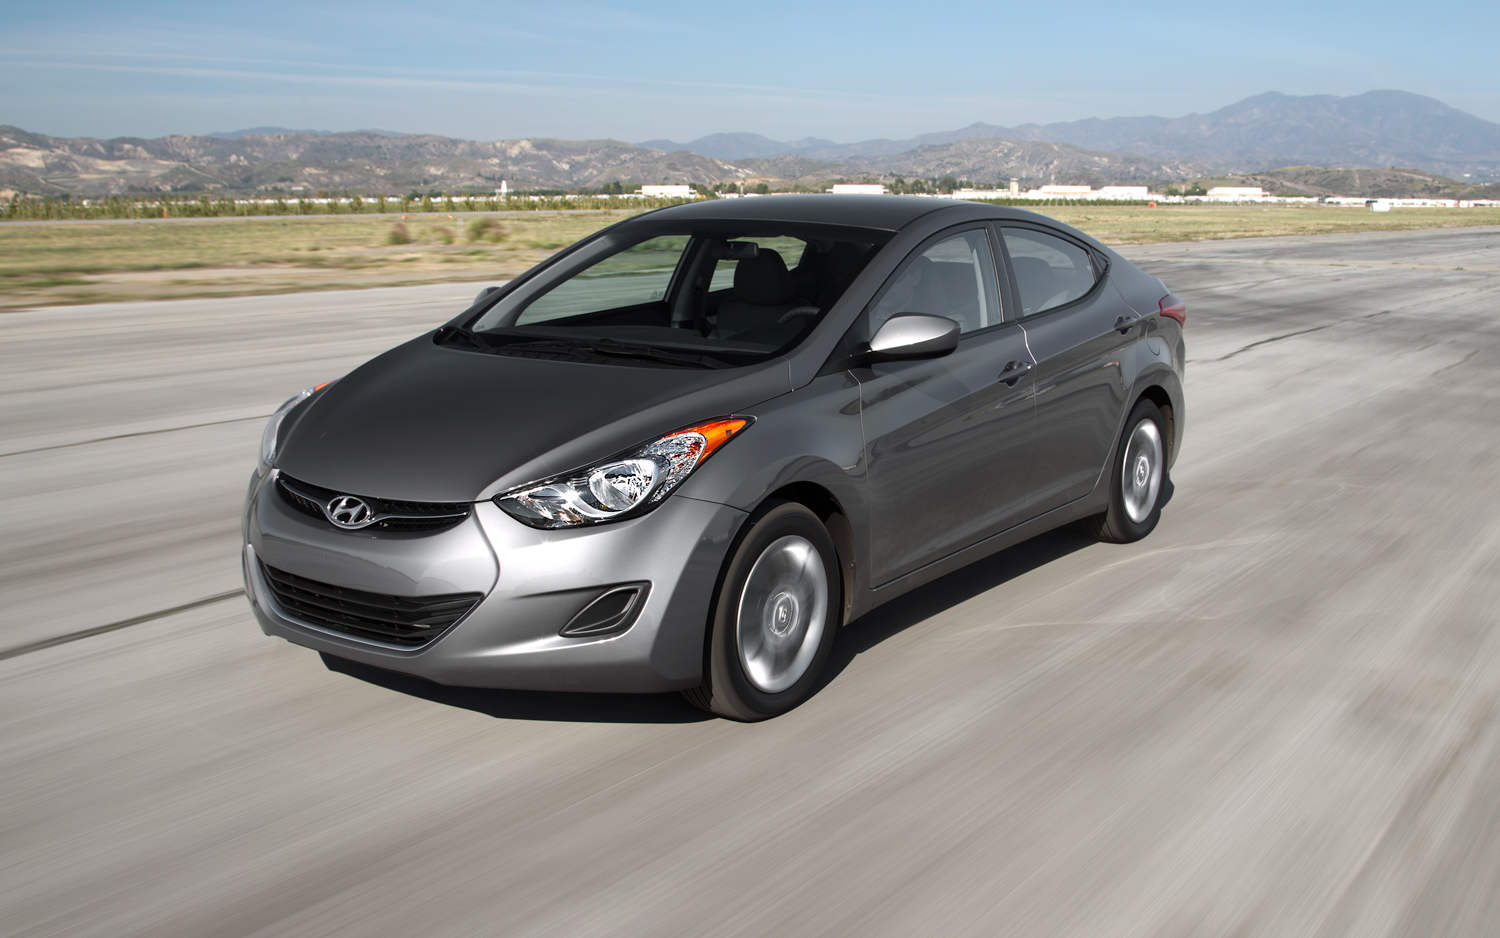 Lovely MPGate: We Take A Second Look At Our Hyundai And Kia Fuel Economy Figures